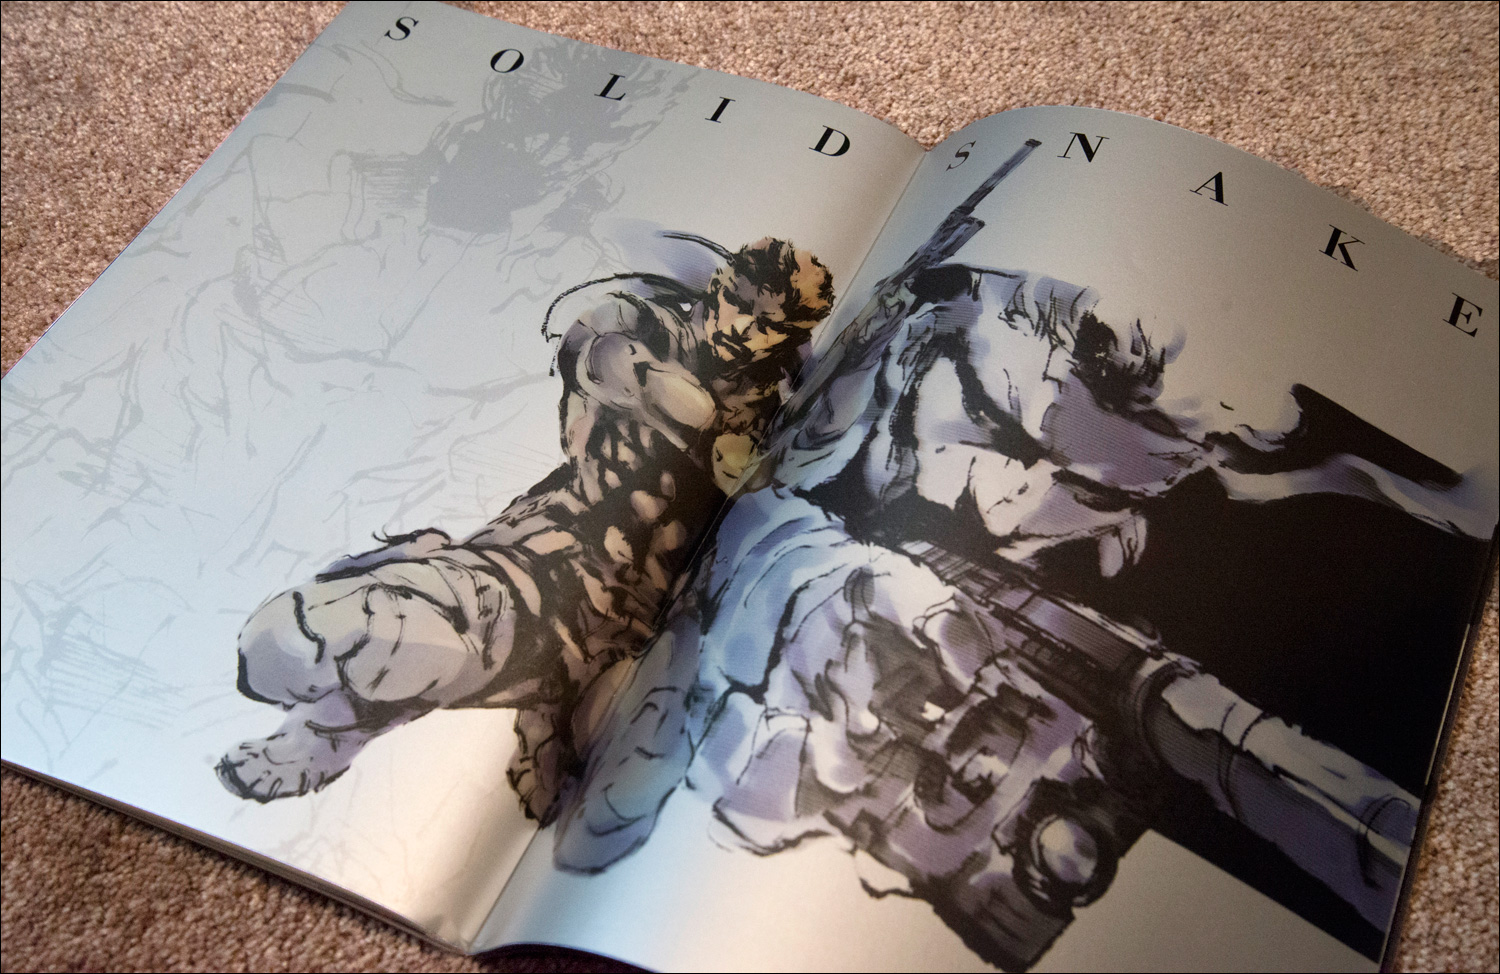 Metal-Gear-Solid-Premium-Package-Classified-Book-Solid-Snake